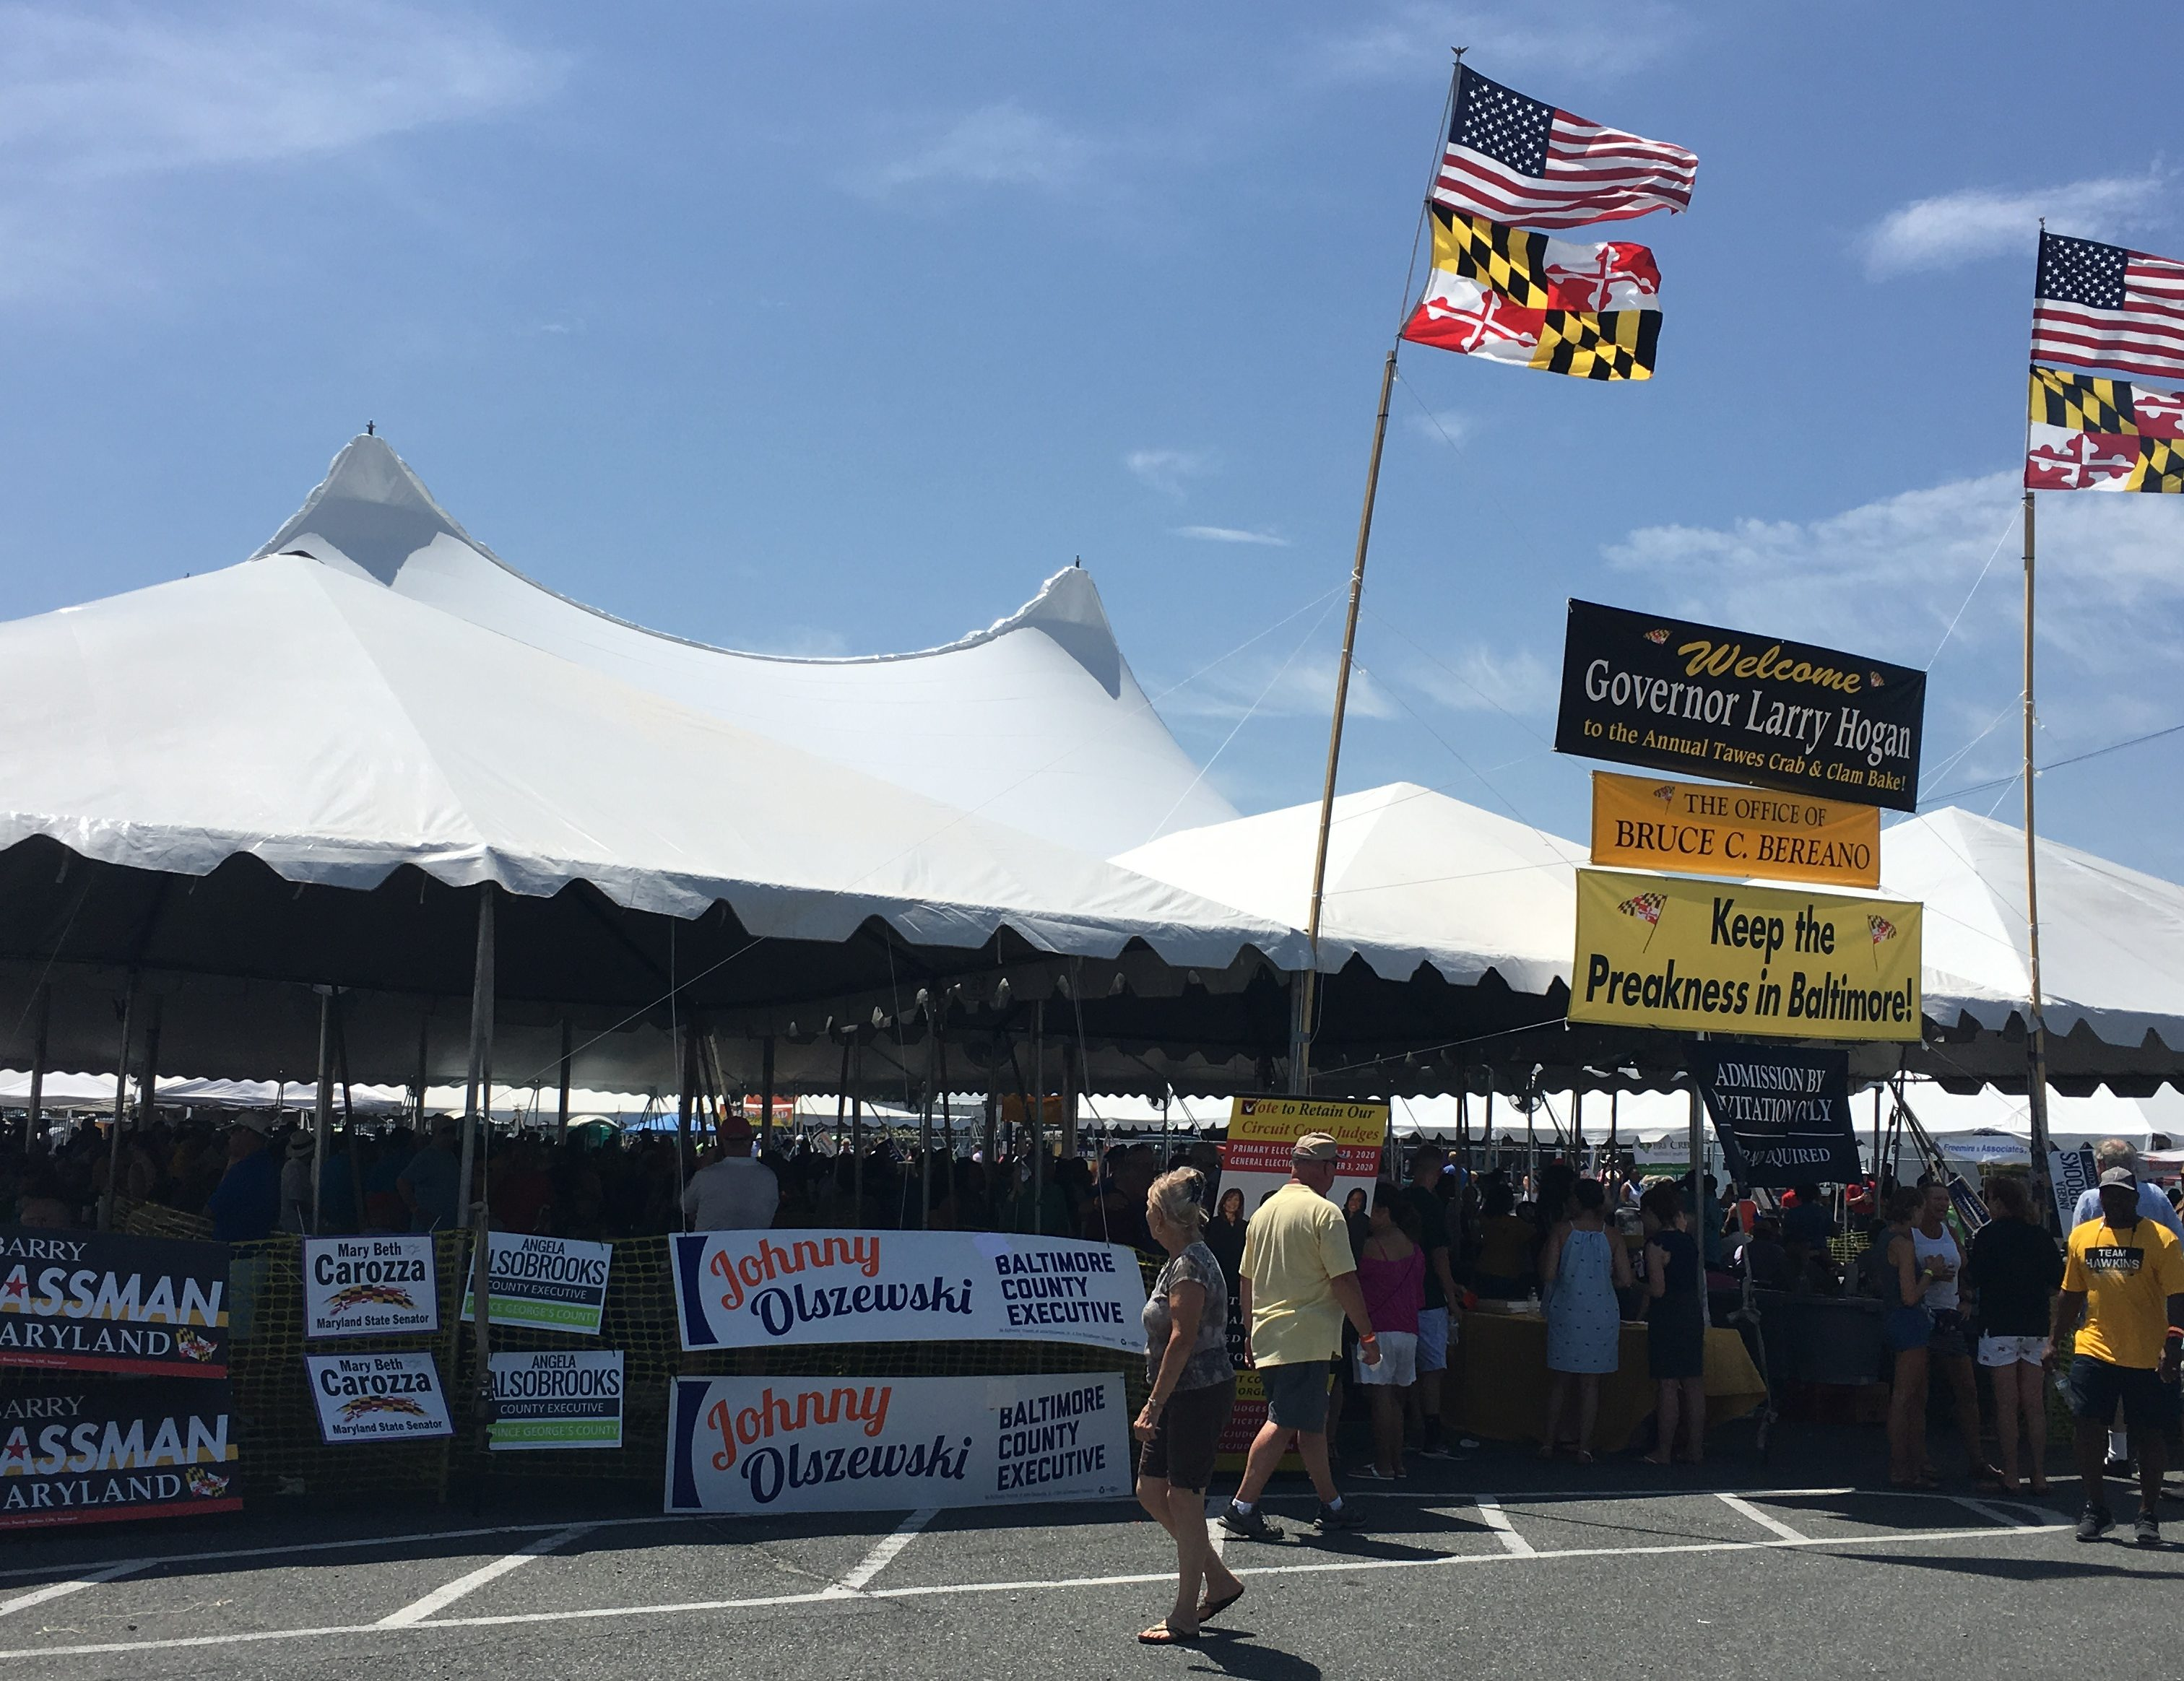 Steamed: Crabs, politicos and patrons at Tawes